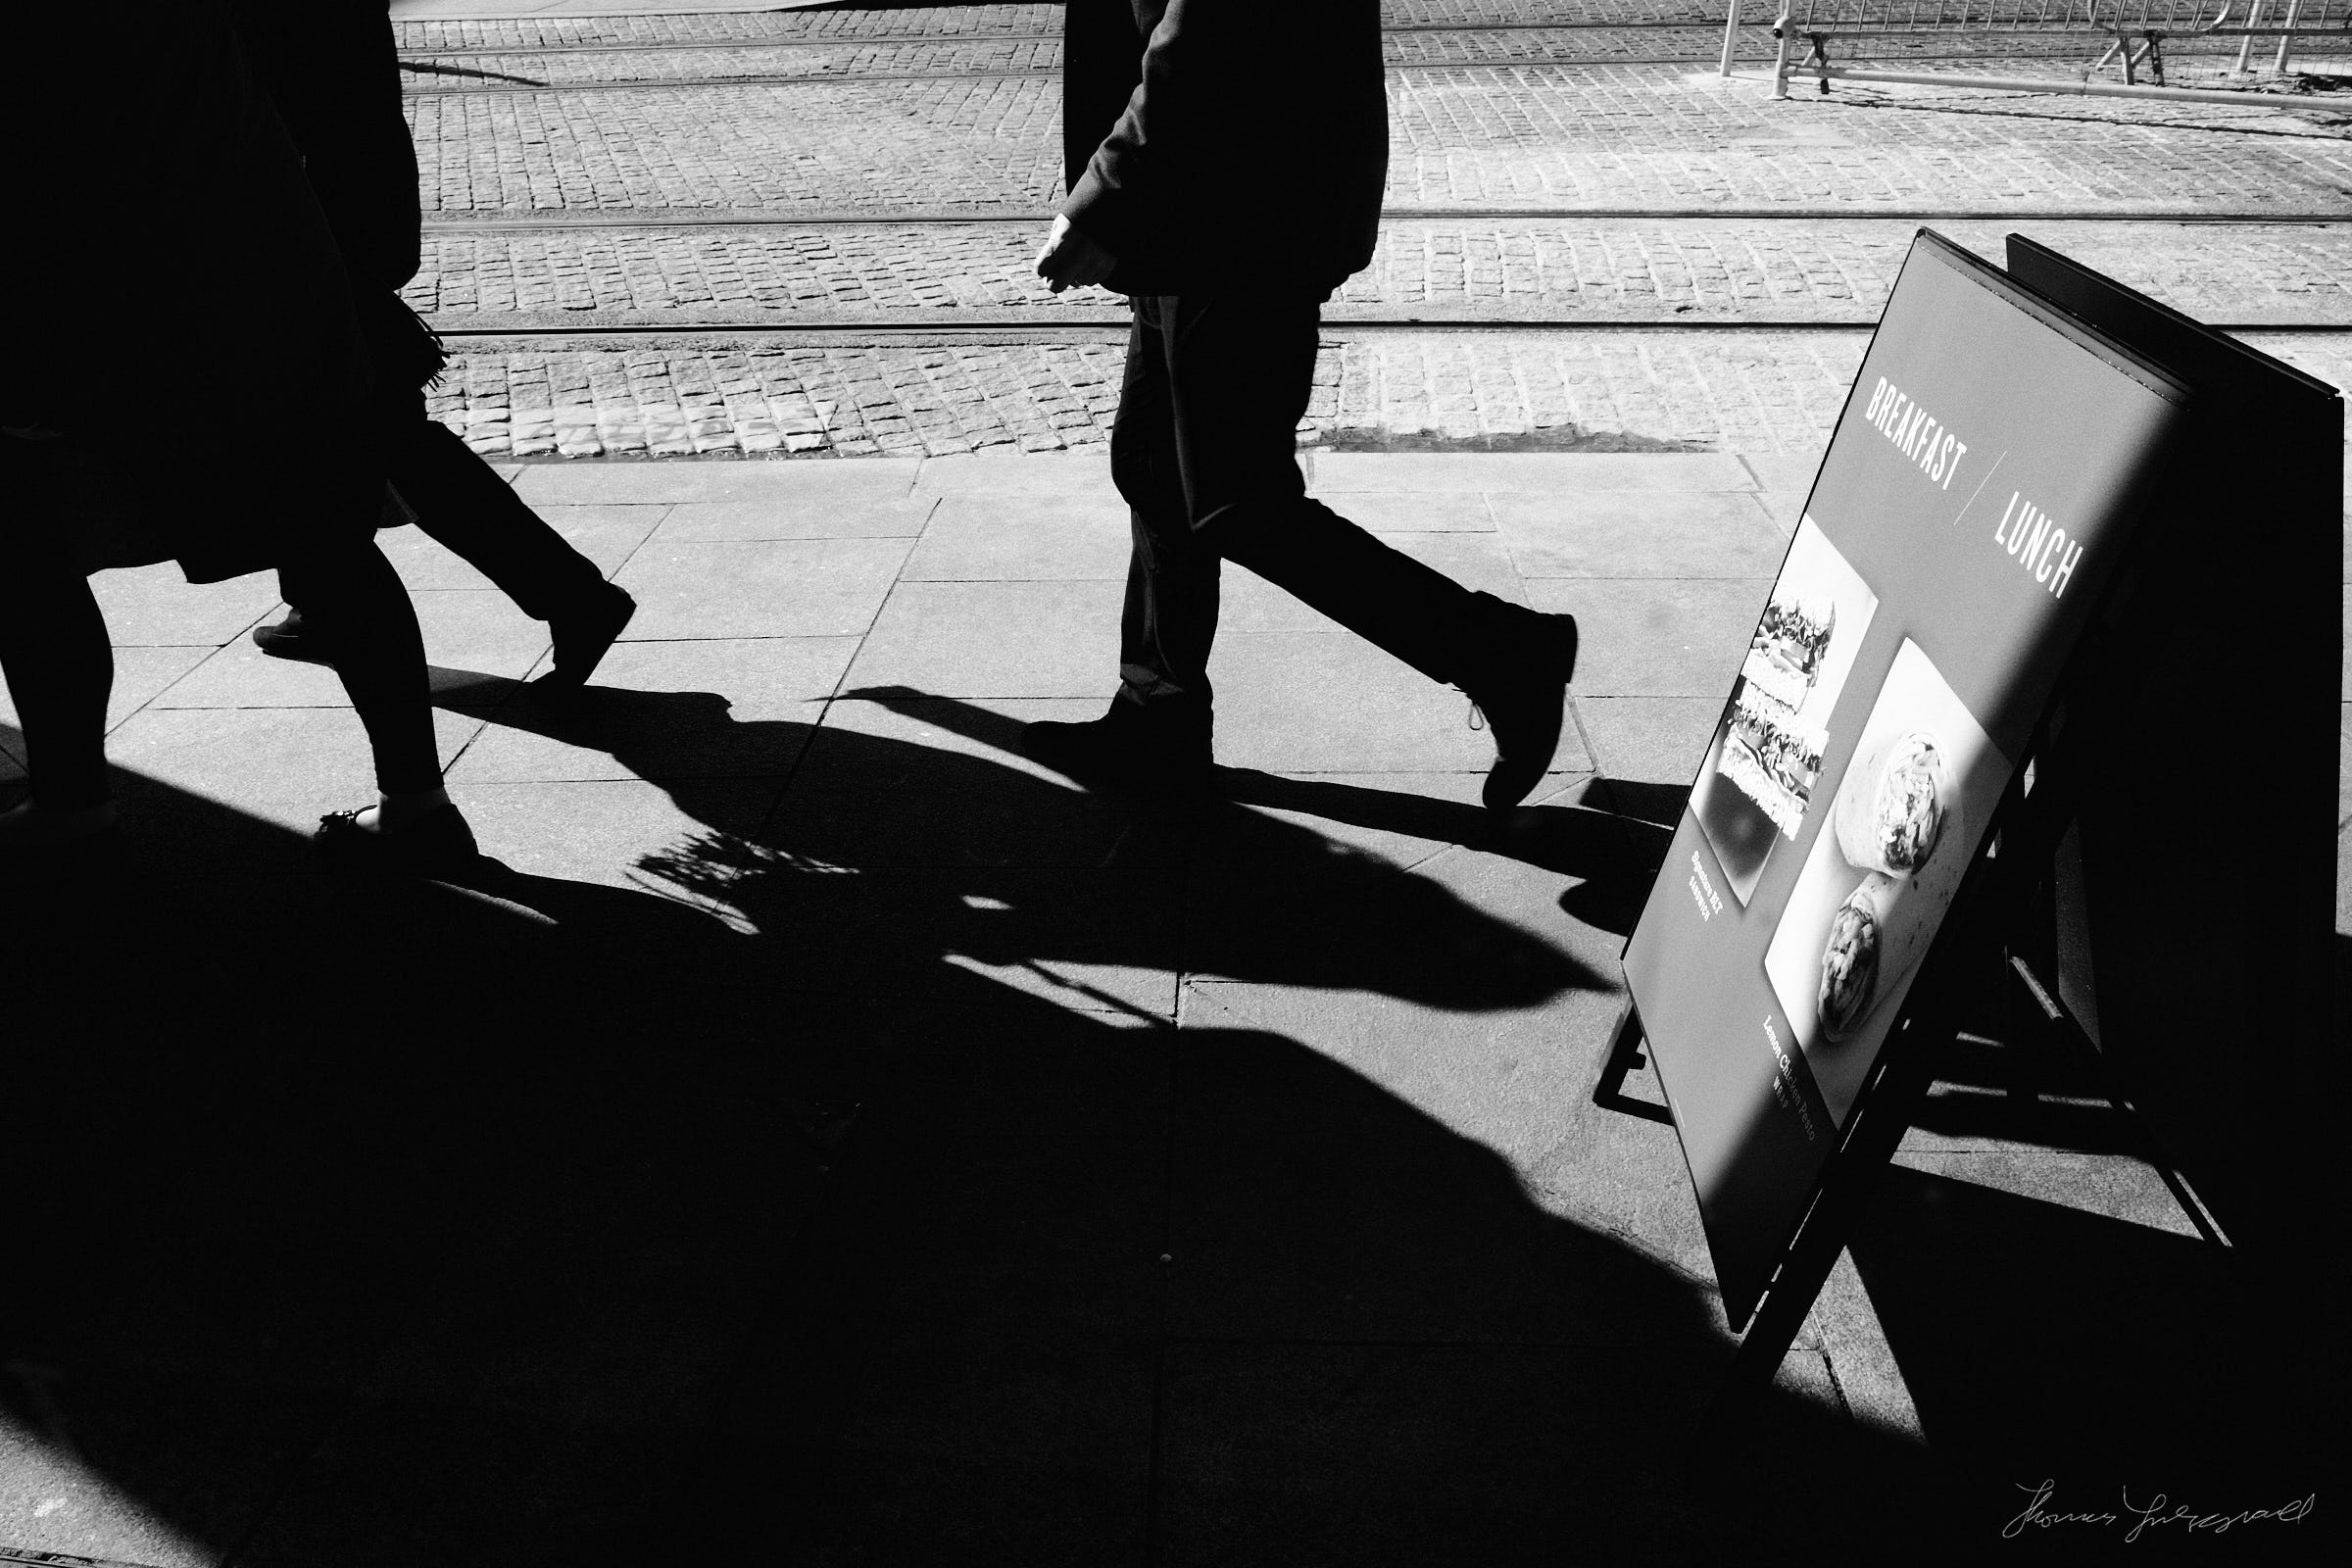 ShadowFeet_And_Street184.jpg